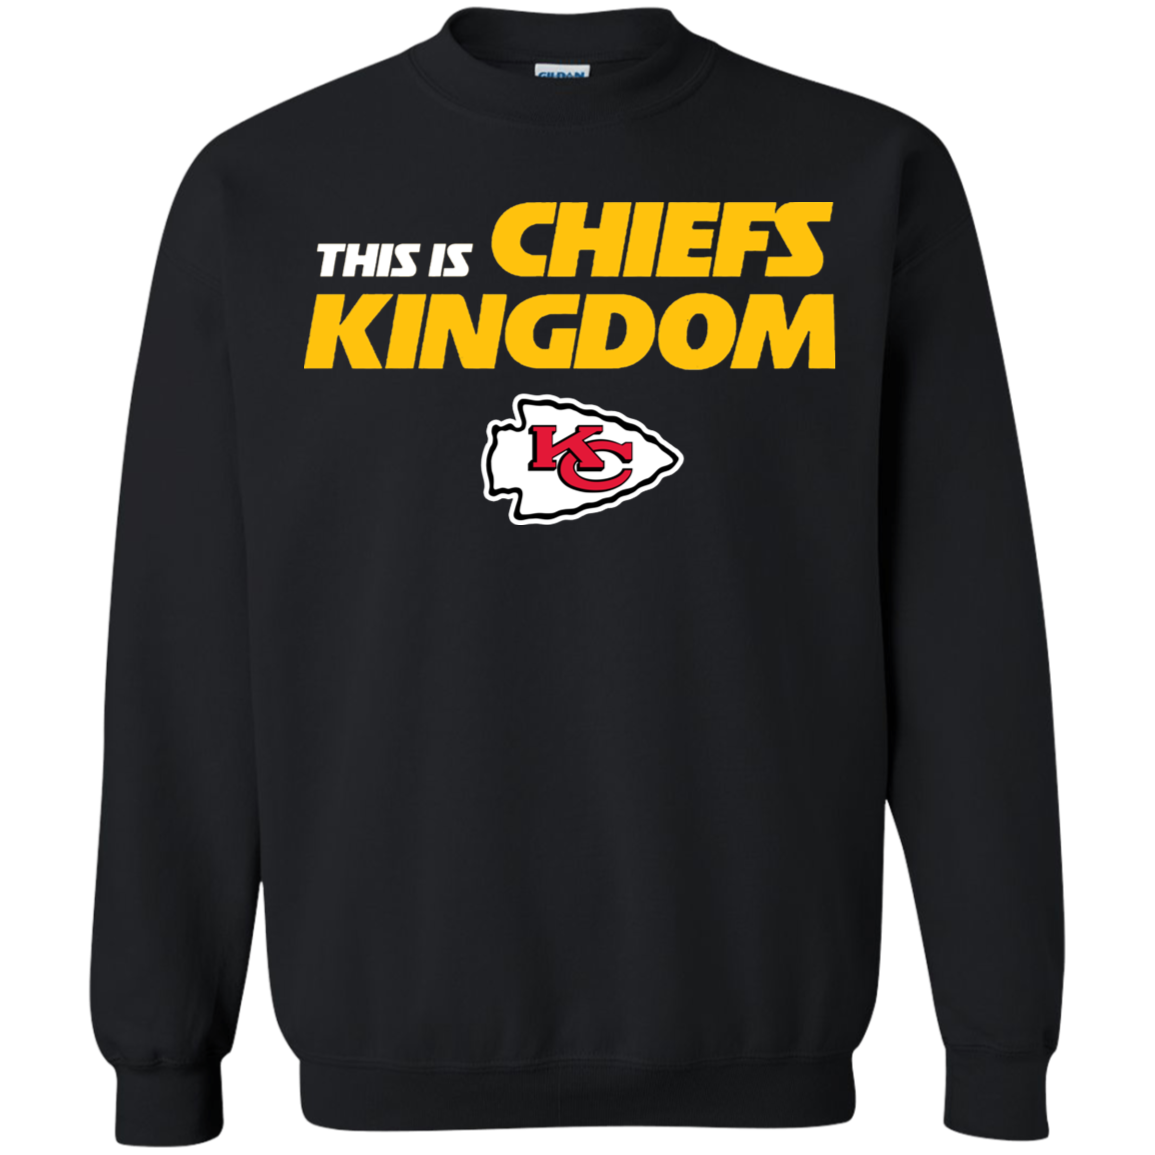 This Is Chiefs Kingdom Sweater